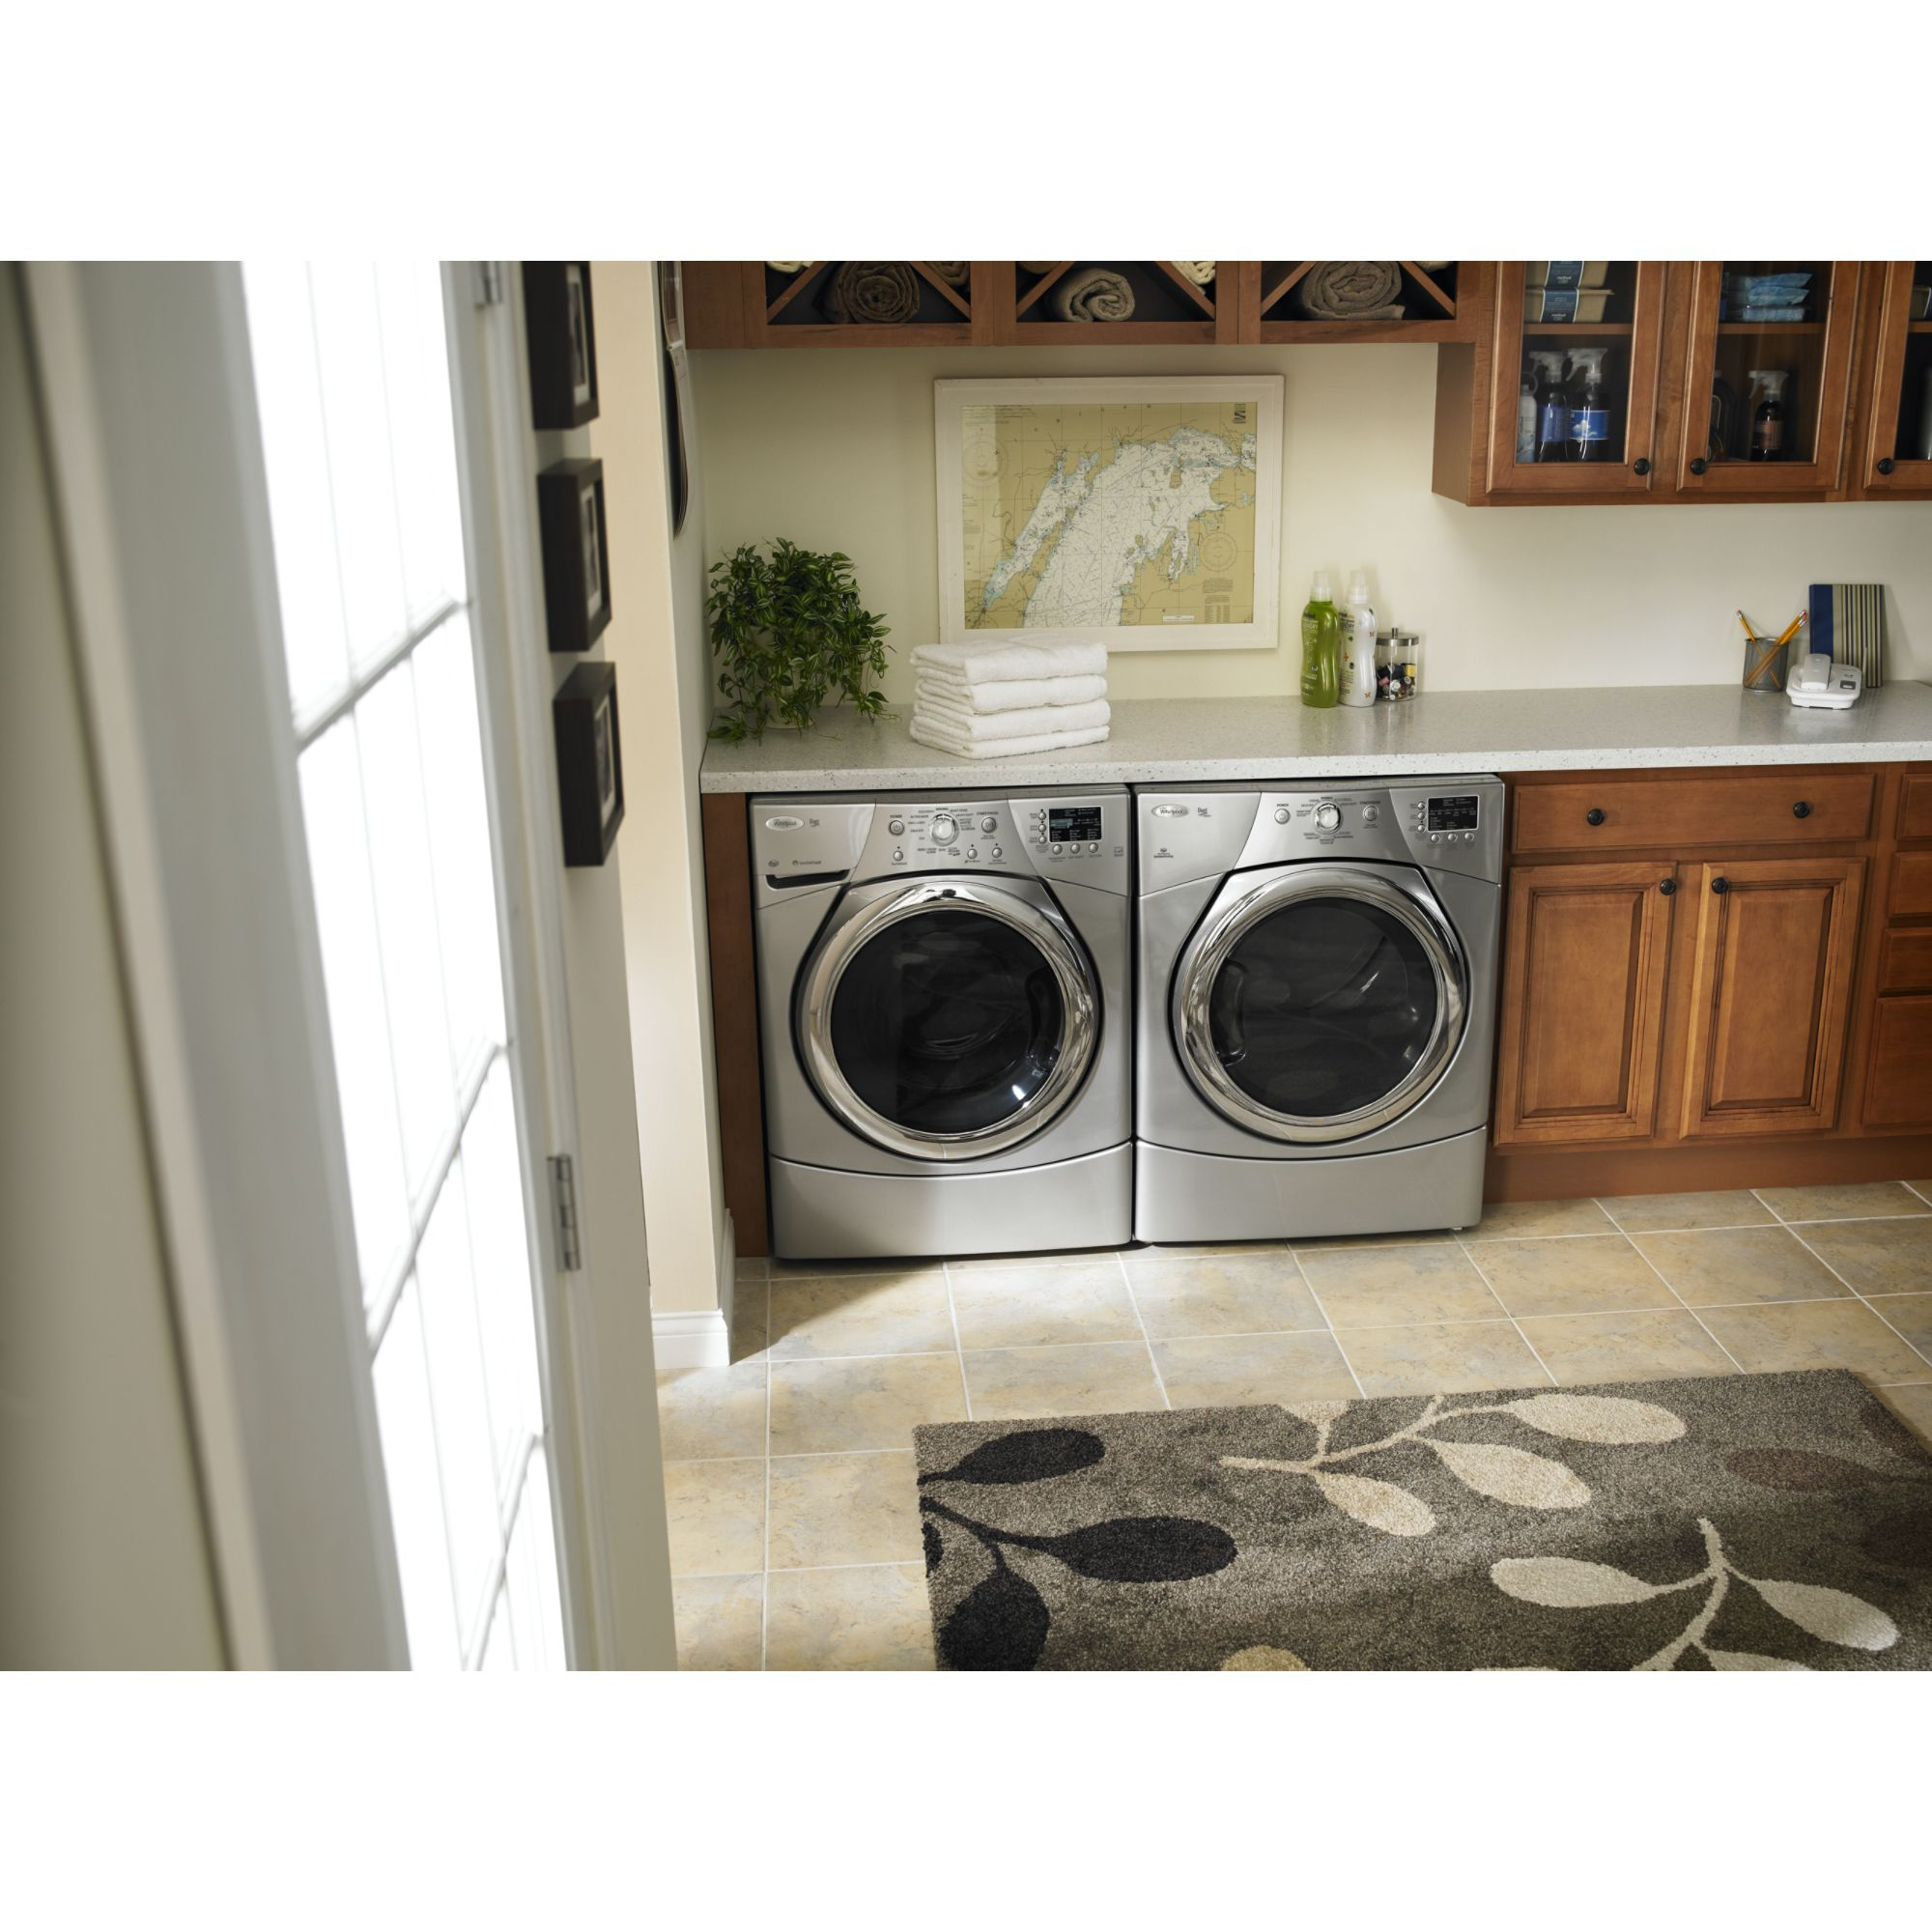 Whirlpool 6.7 cu. ft. Gas Dryer w/ Quick Refresh Steam Cycle - Gray